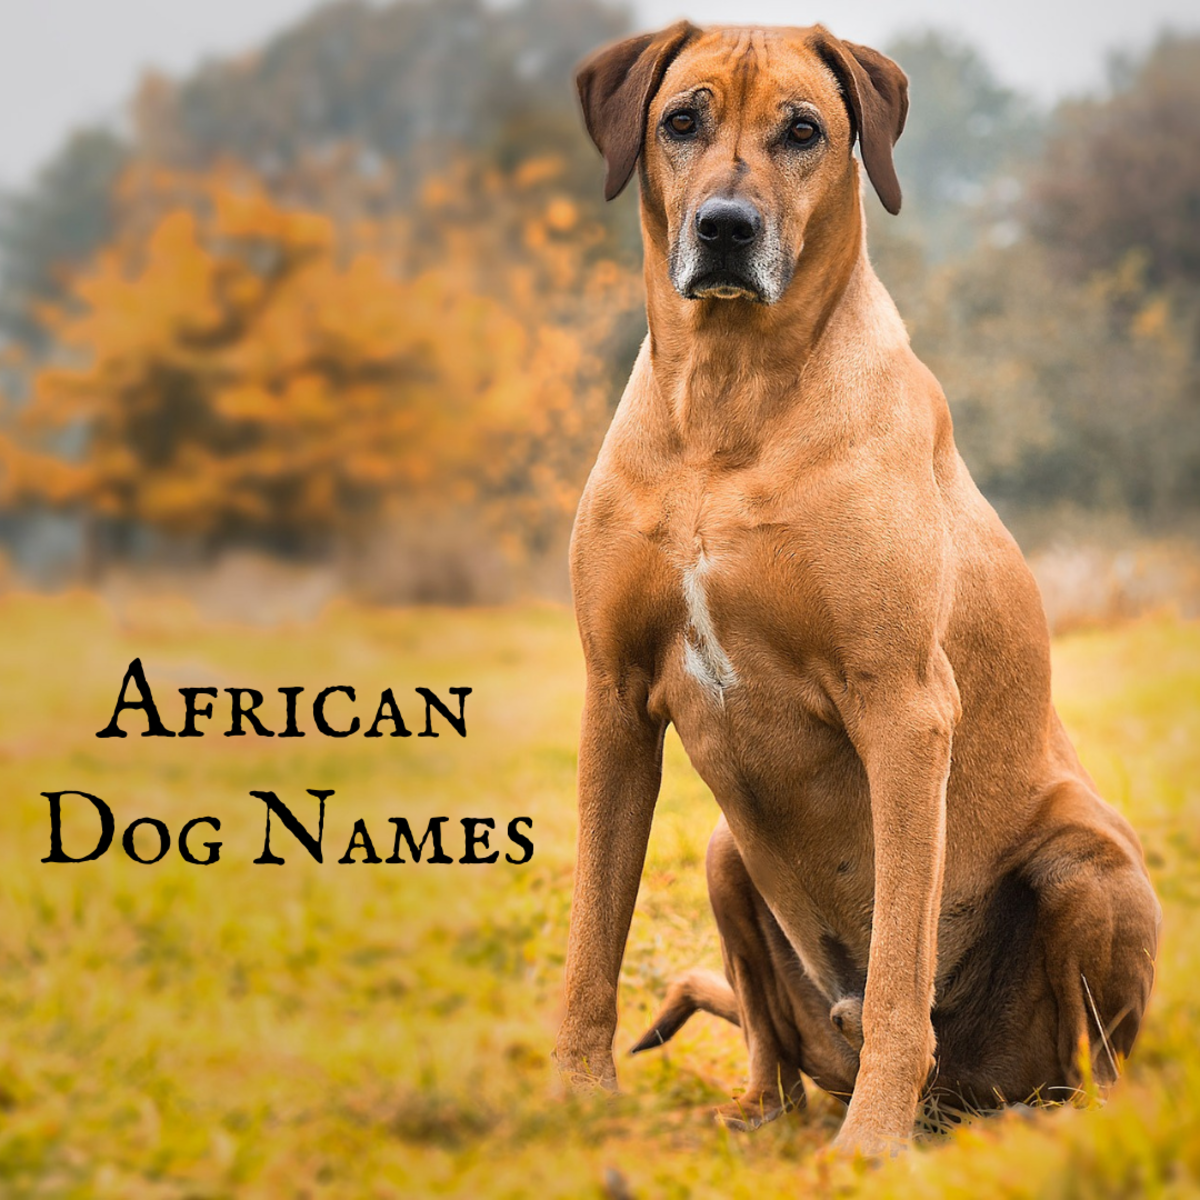 A Rhodesian Ridgeback deserves a name with African roots